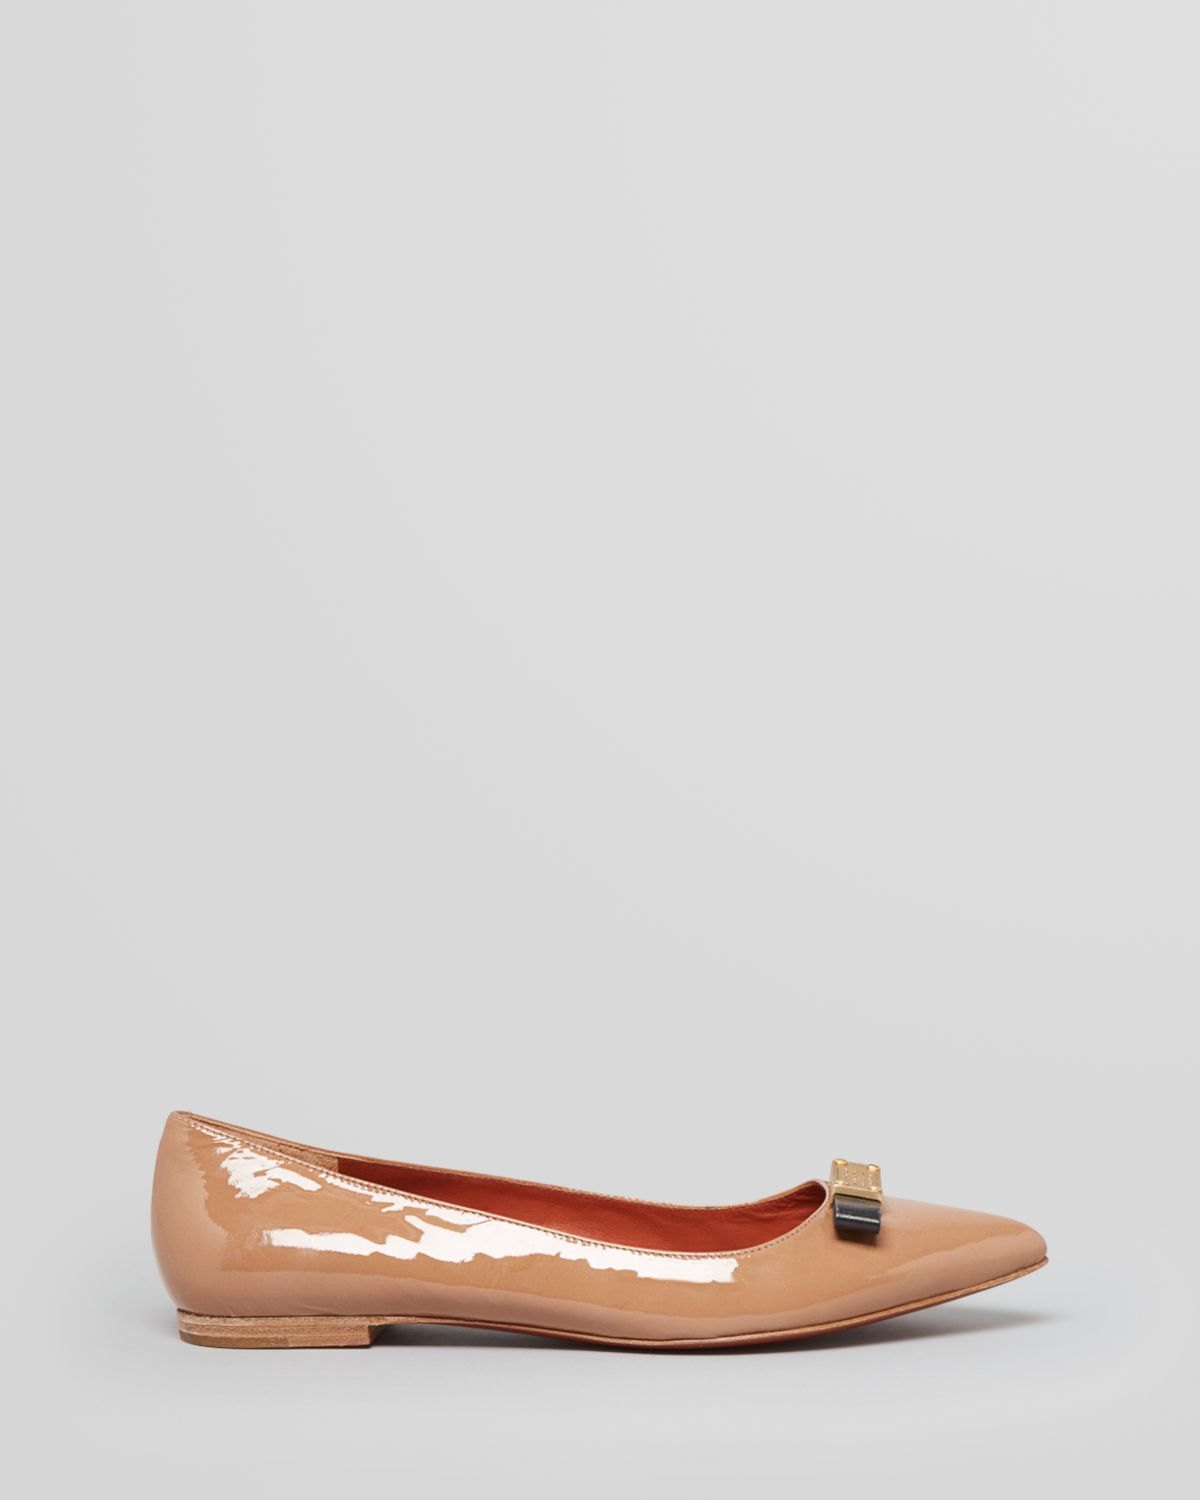 Marc Jacobs Patent Leather Pointed-Toe Flats clearance recommend QYZrFD